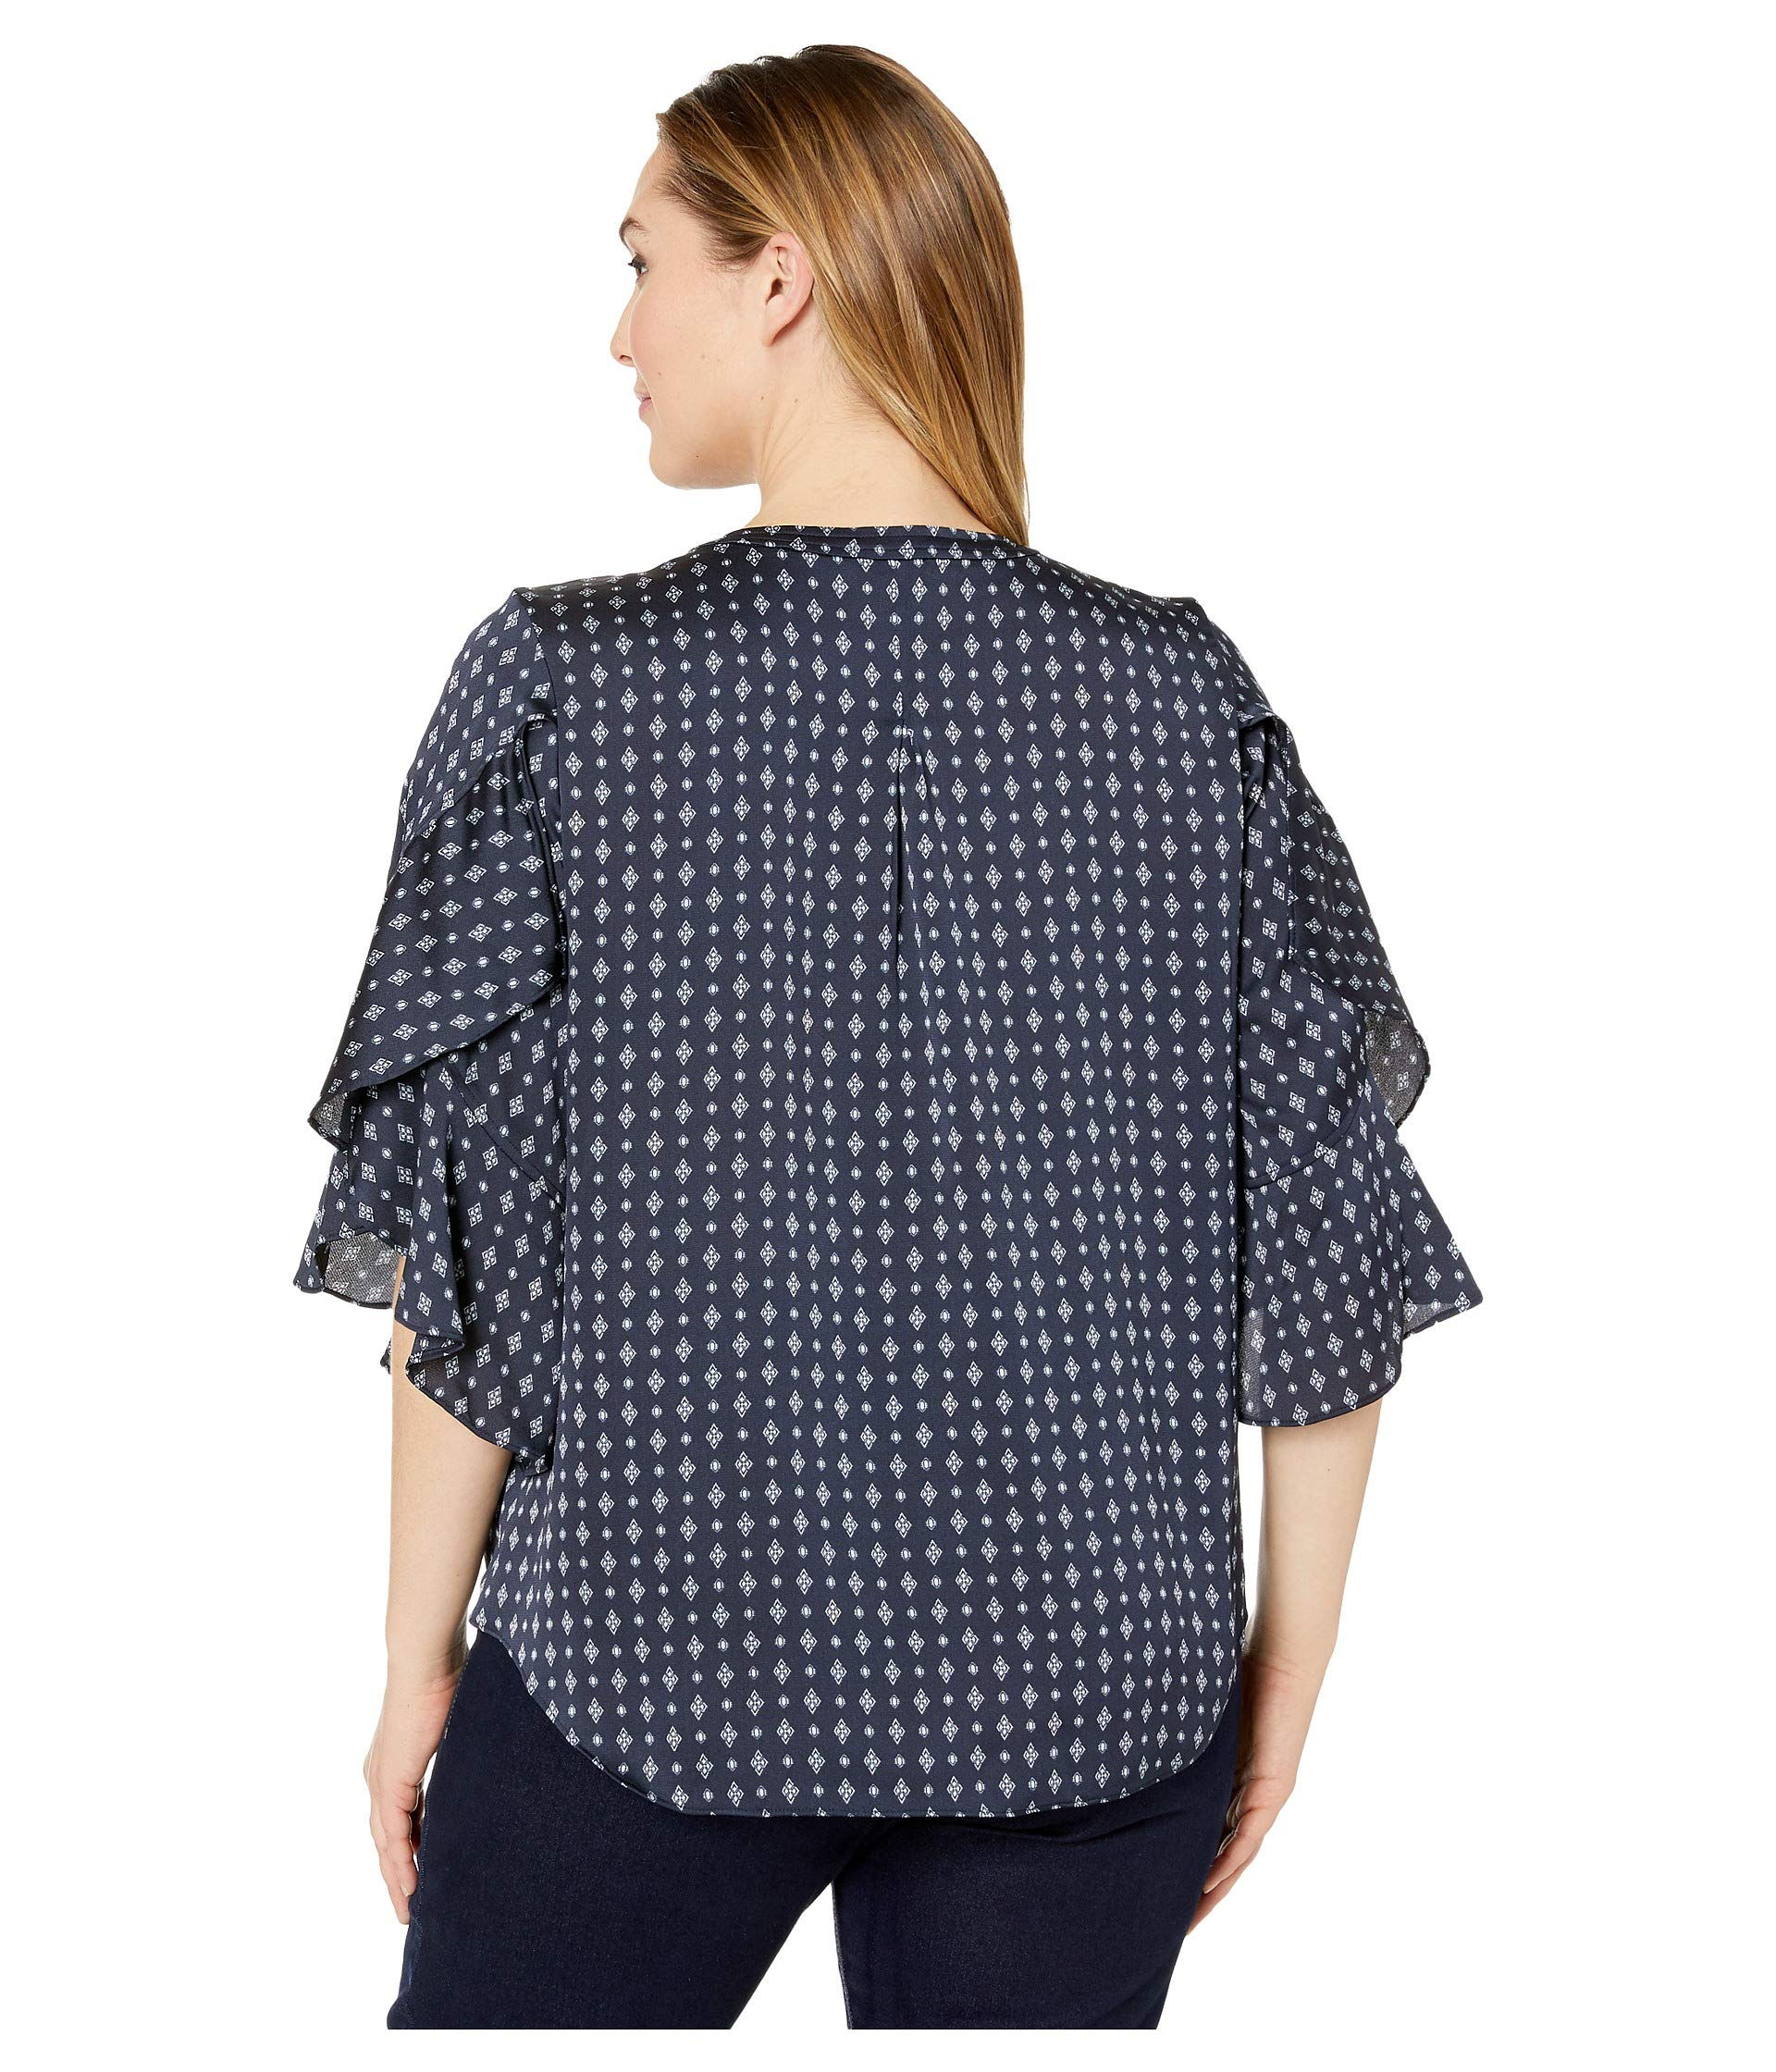 Bell Blouse Down Ruffle Camuto Vince Accents Classic Size Geo Sleeve Specialty Plus Button Navy nA6PqRX